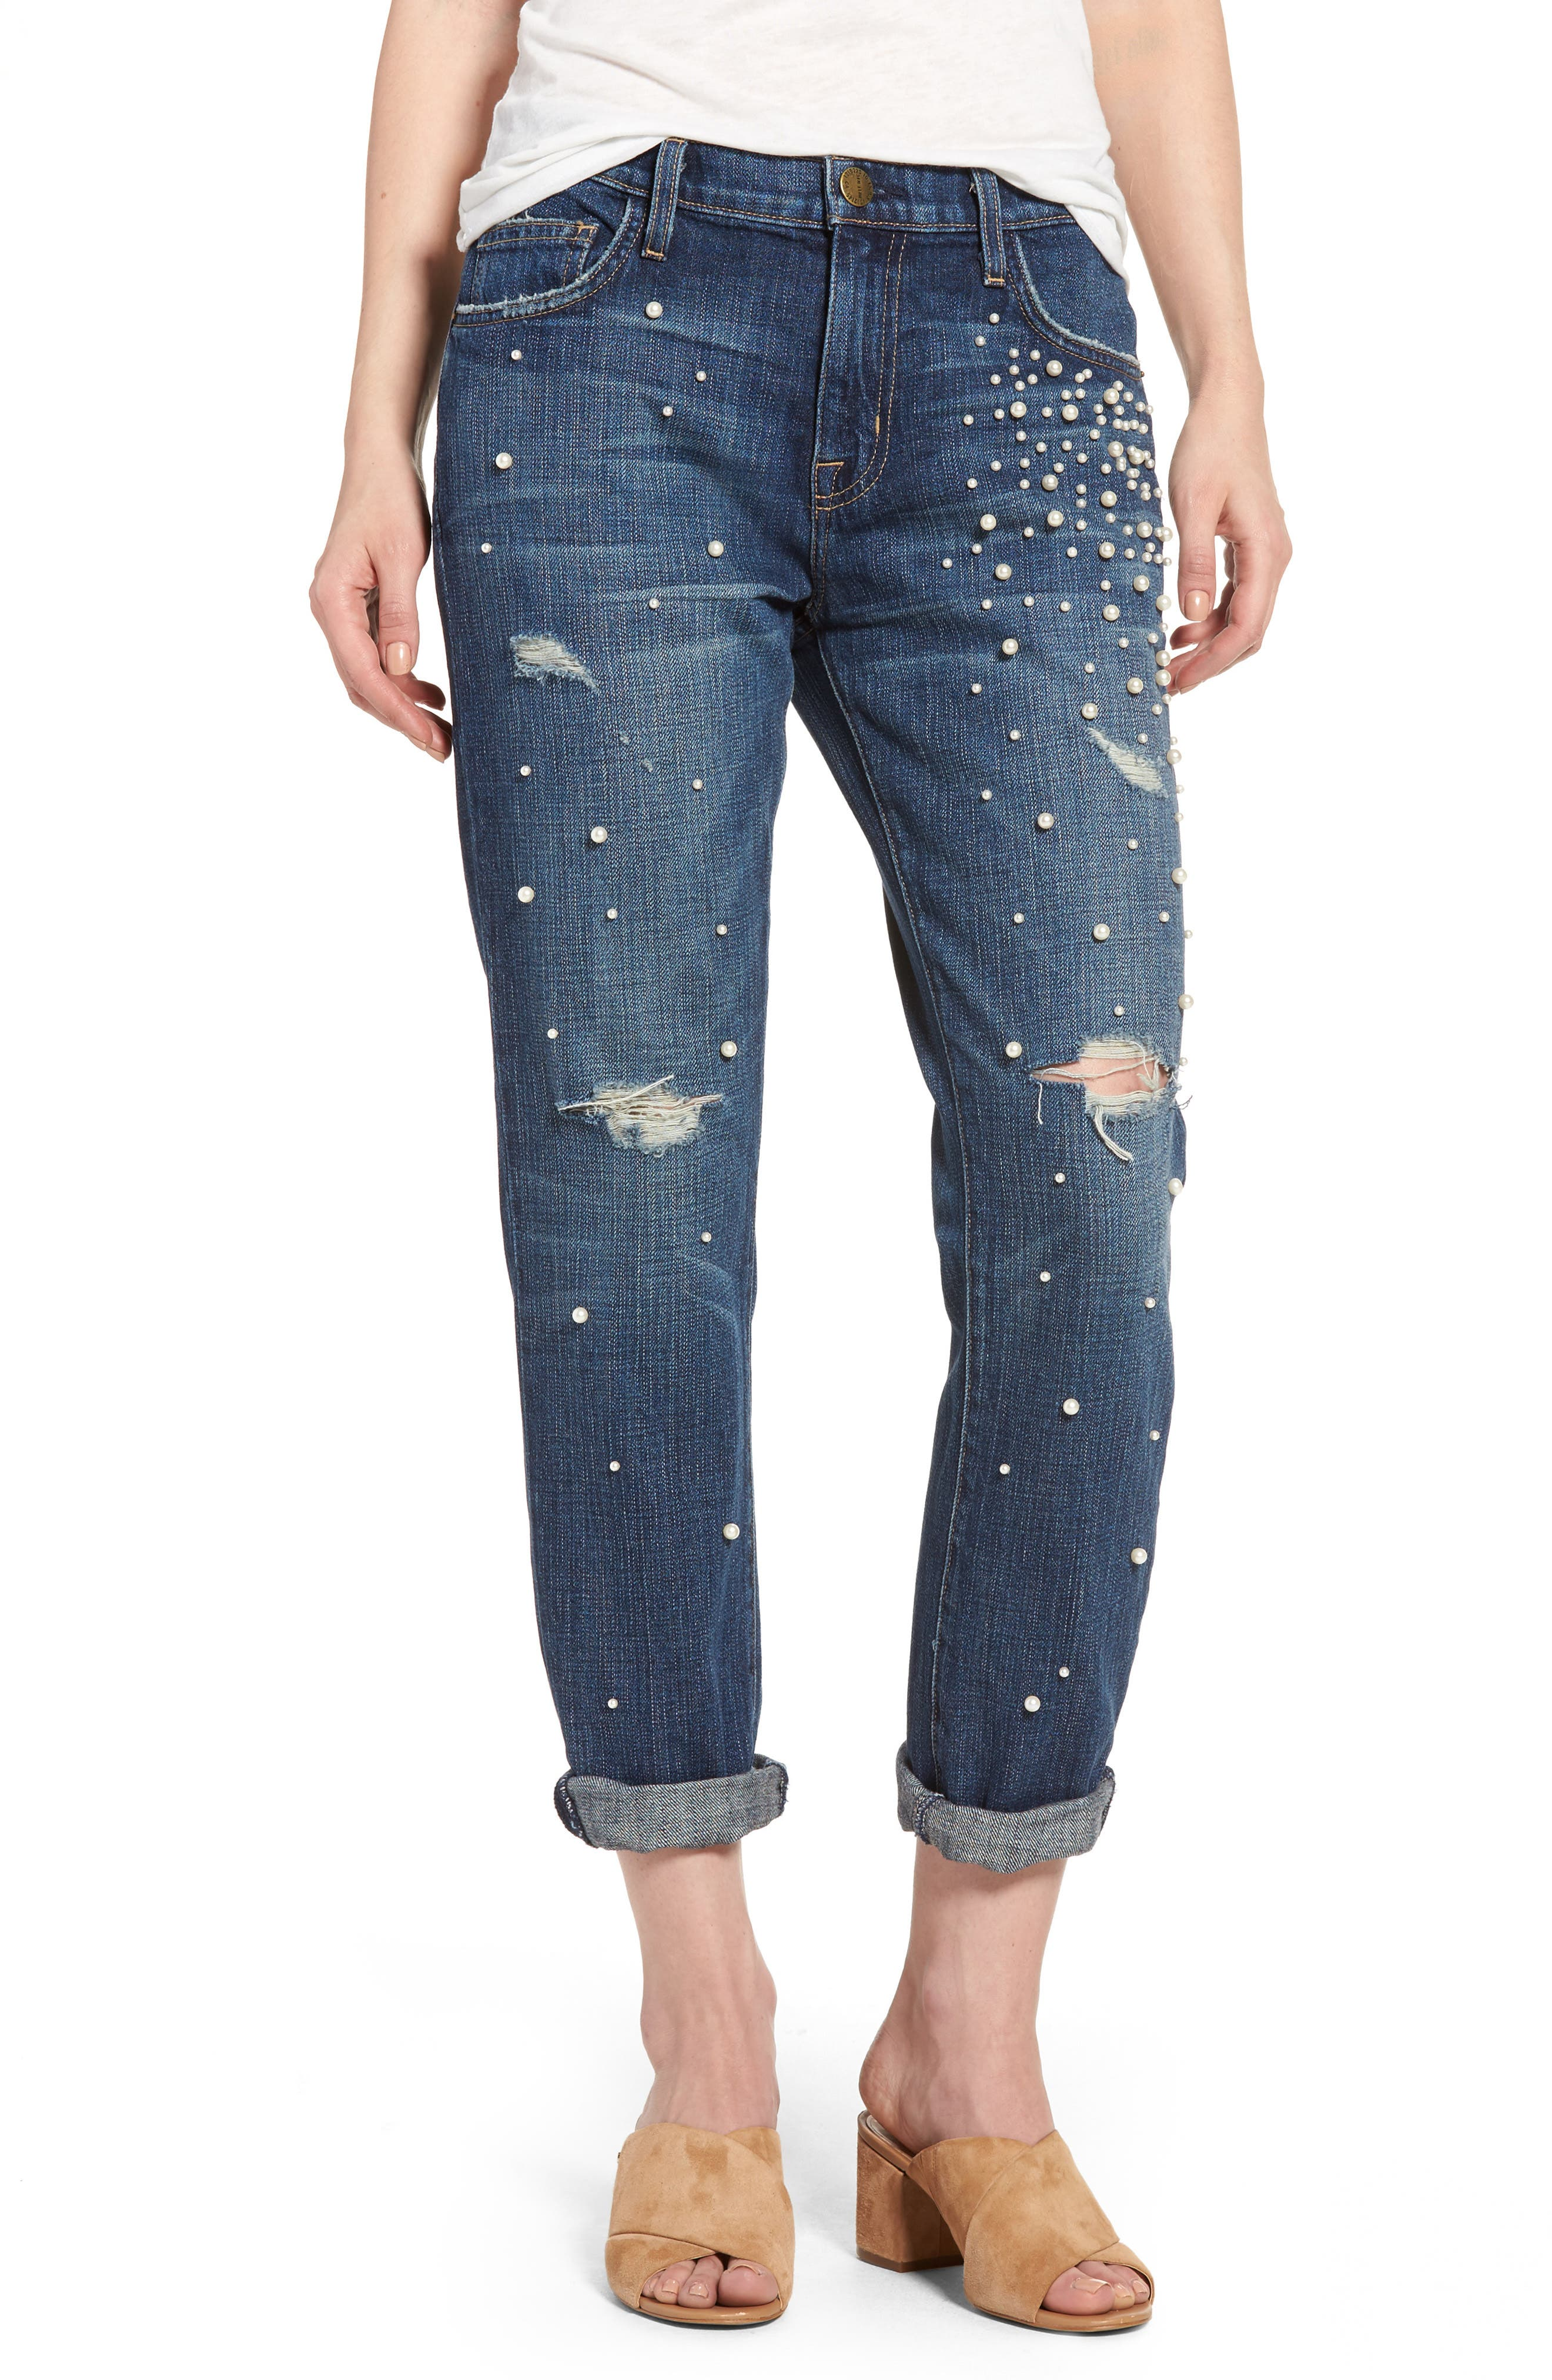 Alternate Image 1 Selected - Current/Elliott 'The Fling' Boyfriend Jeans (Loved)